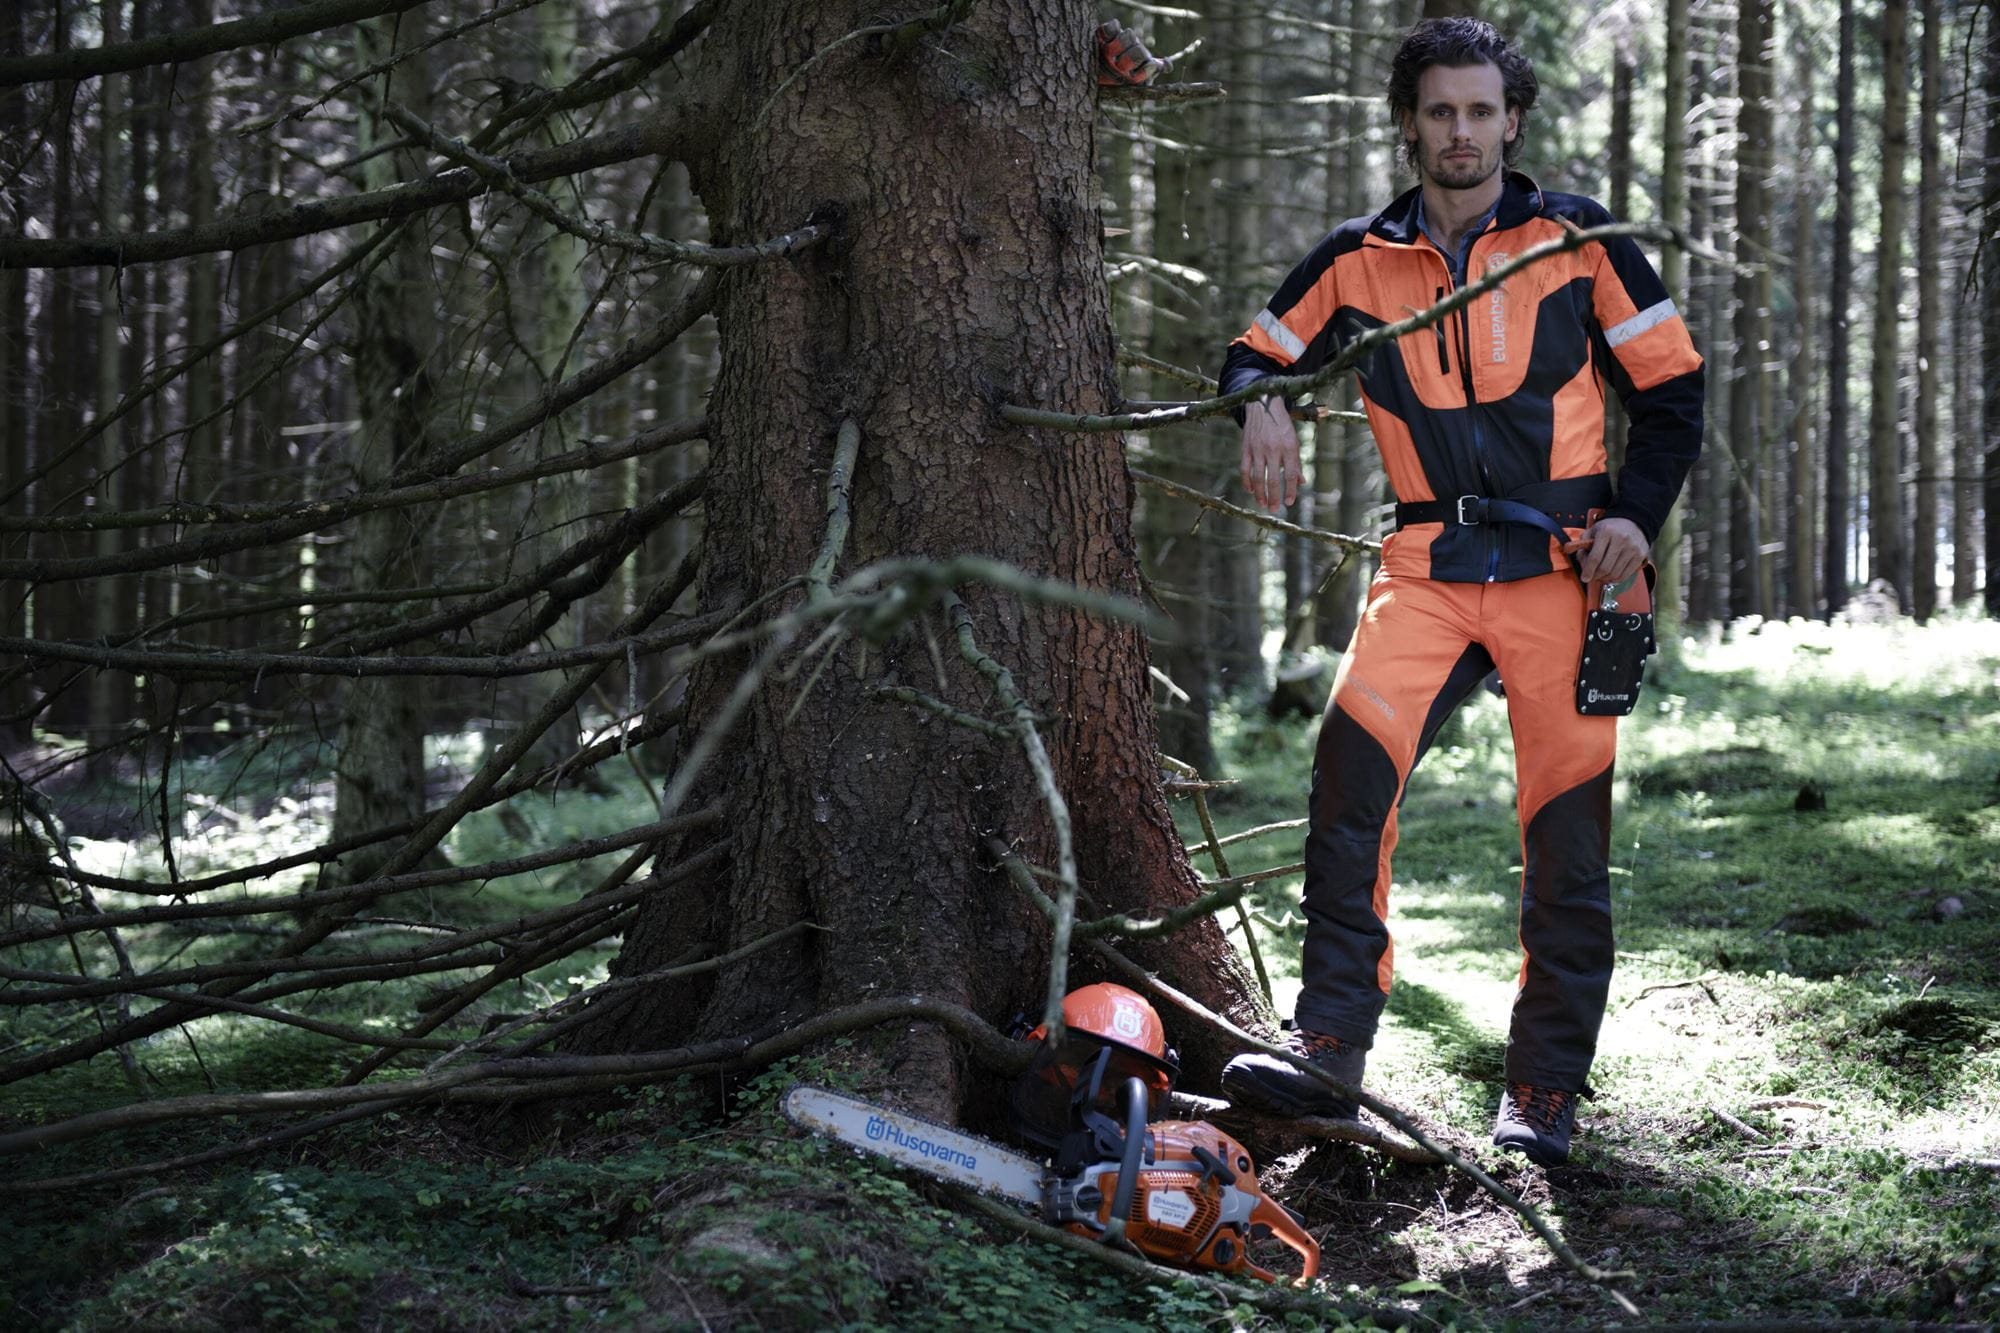 Chainsaw safety equipment